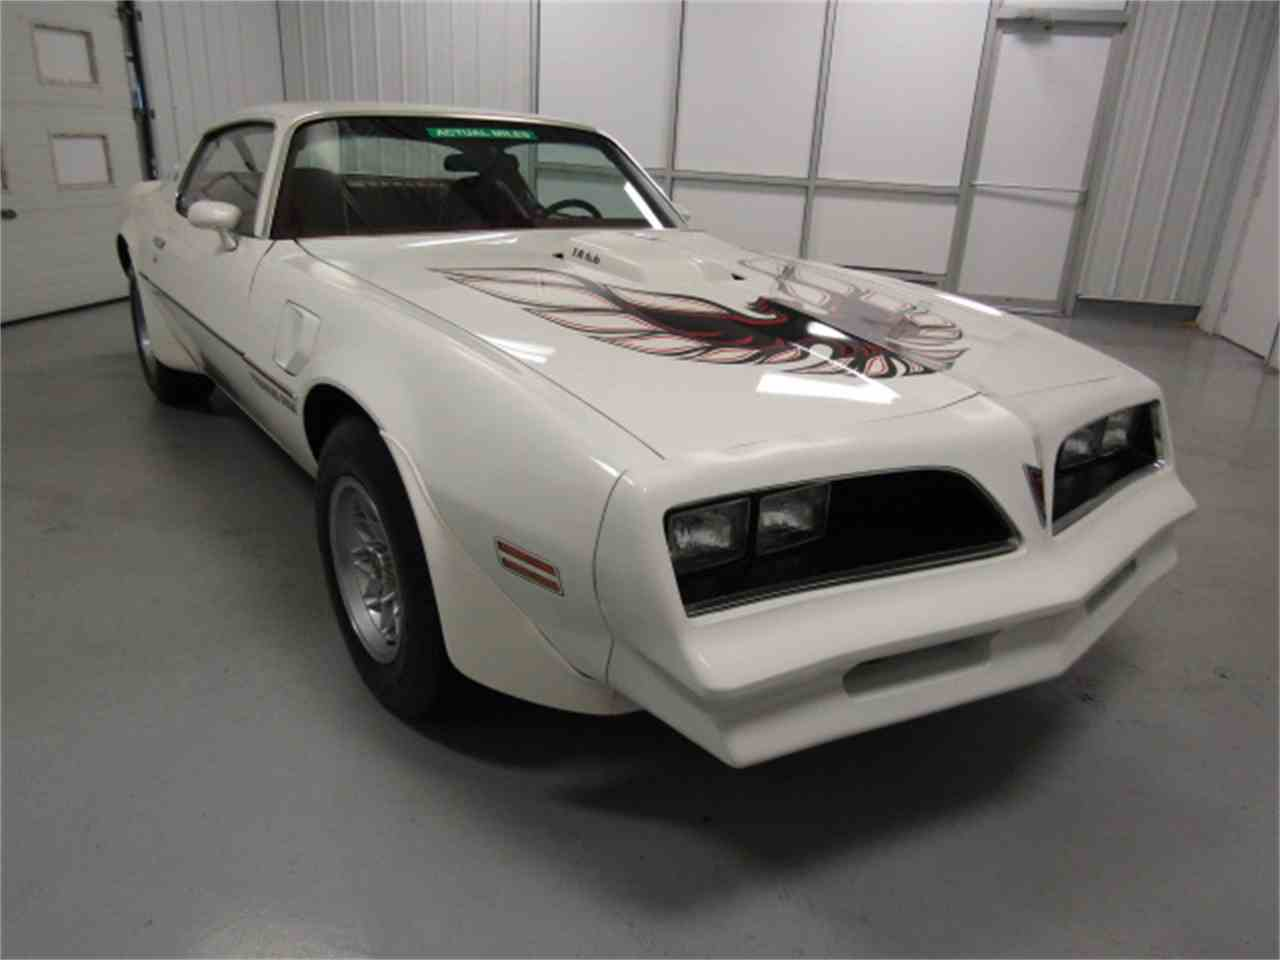 Large Picture of 1978 Pontiac Firebird located in Virginia - $39,000.00 Offered by Duncan Imports & Classic Cars - JLC2